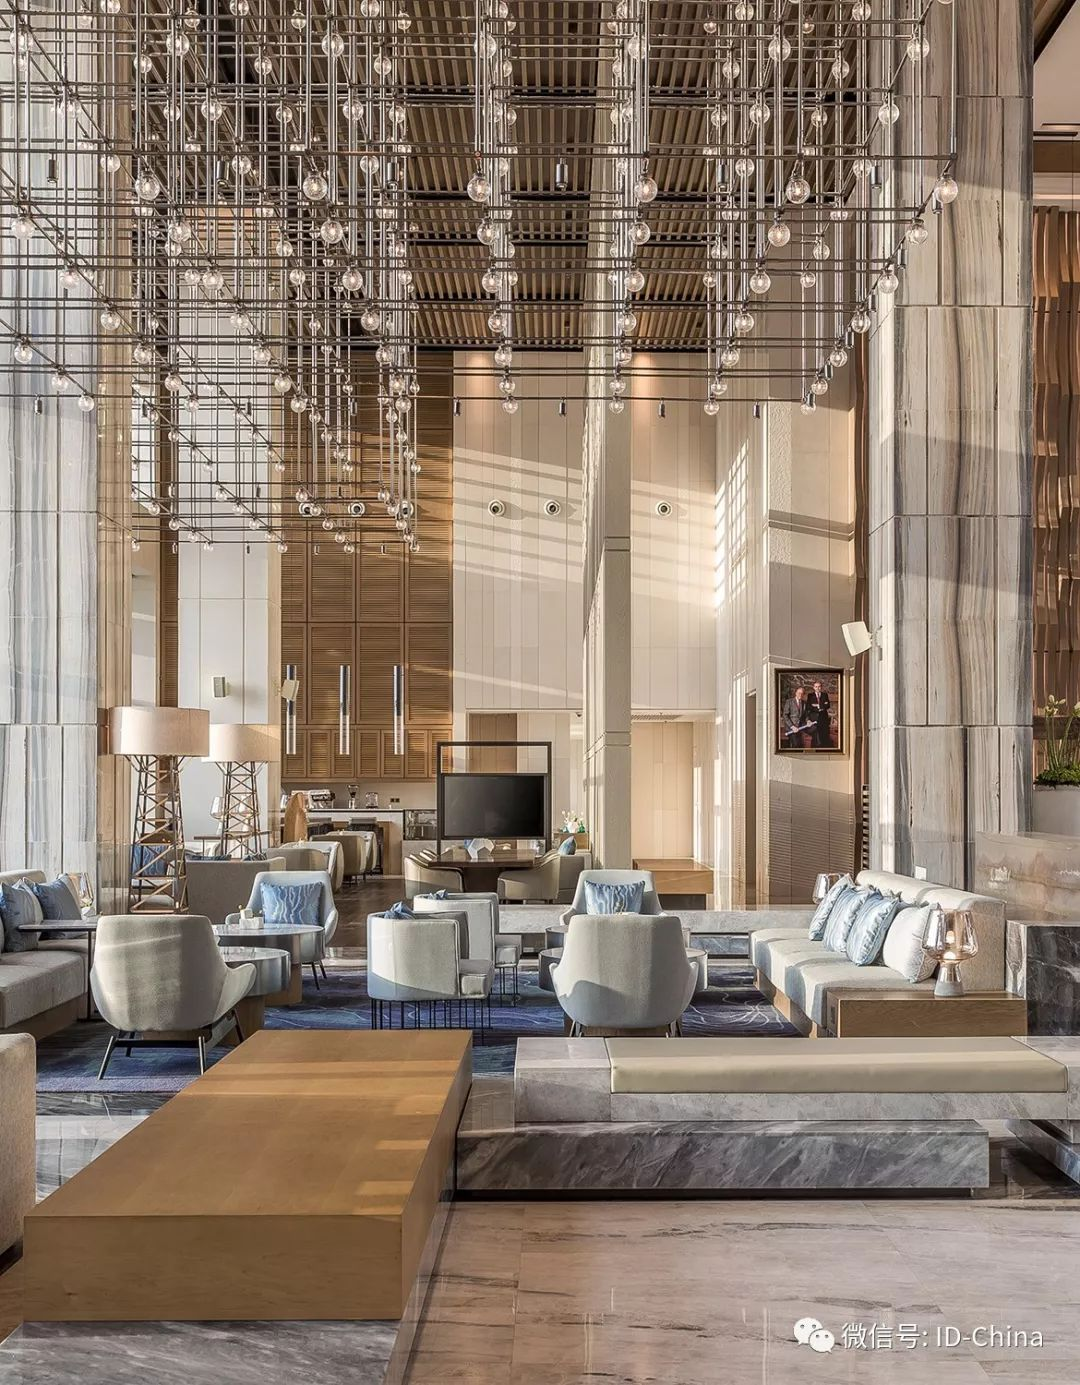 Unique Hotel Rooms: Create A Luxurious Yet Modern Hotel Lobby Using These